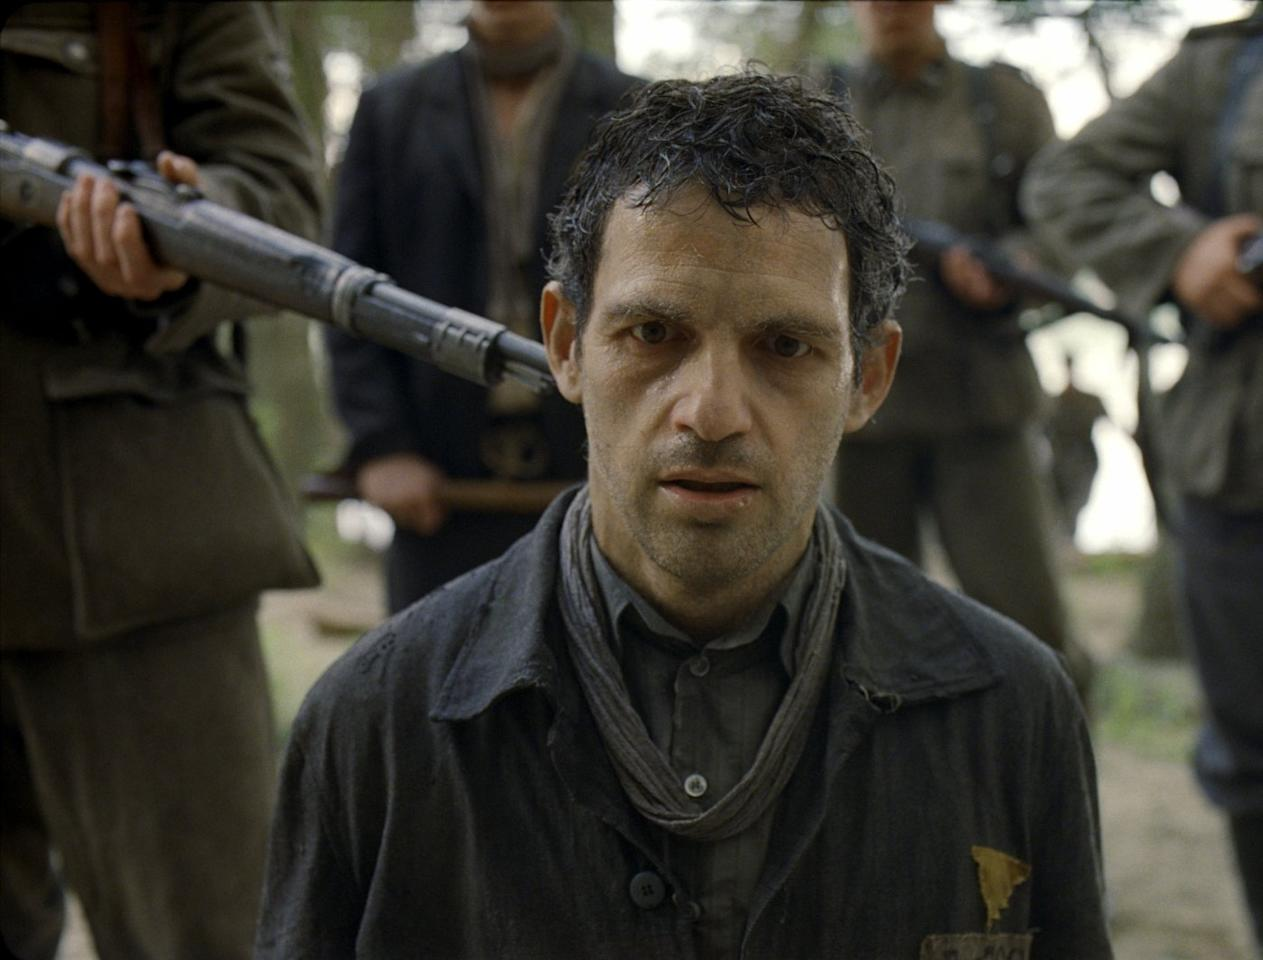 <p>This modest Hungarian holocaust drama won countless awards this year, including the Best Foreign Language Film Oscar, for writer-director László Nemes. It's grimly intense, but utterly unforgettable, reminding us of the humans at the heart of history's most shameful hour. </p>